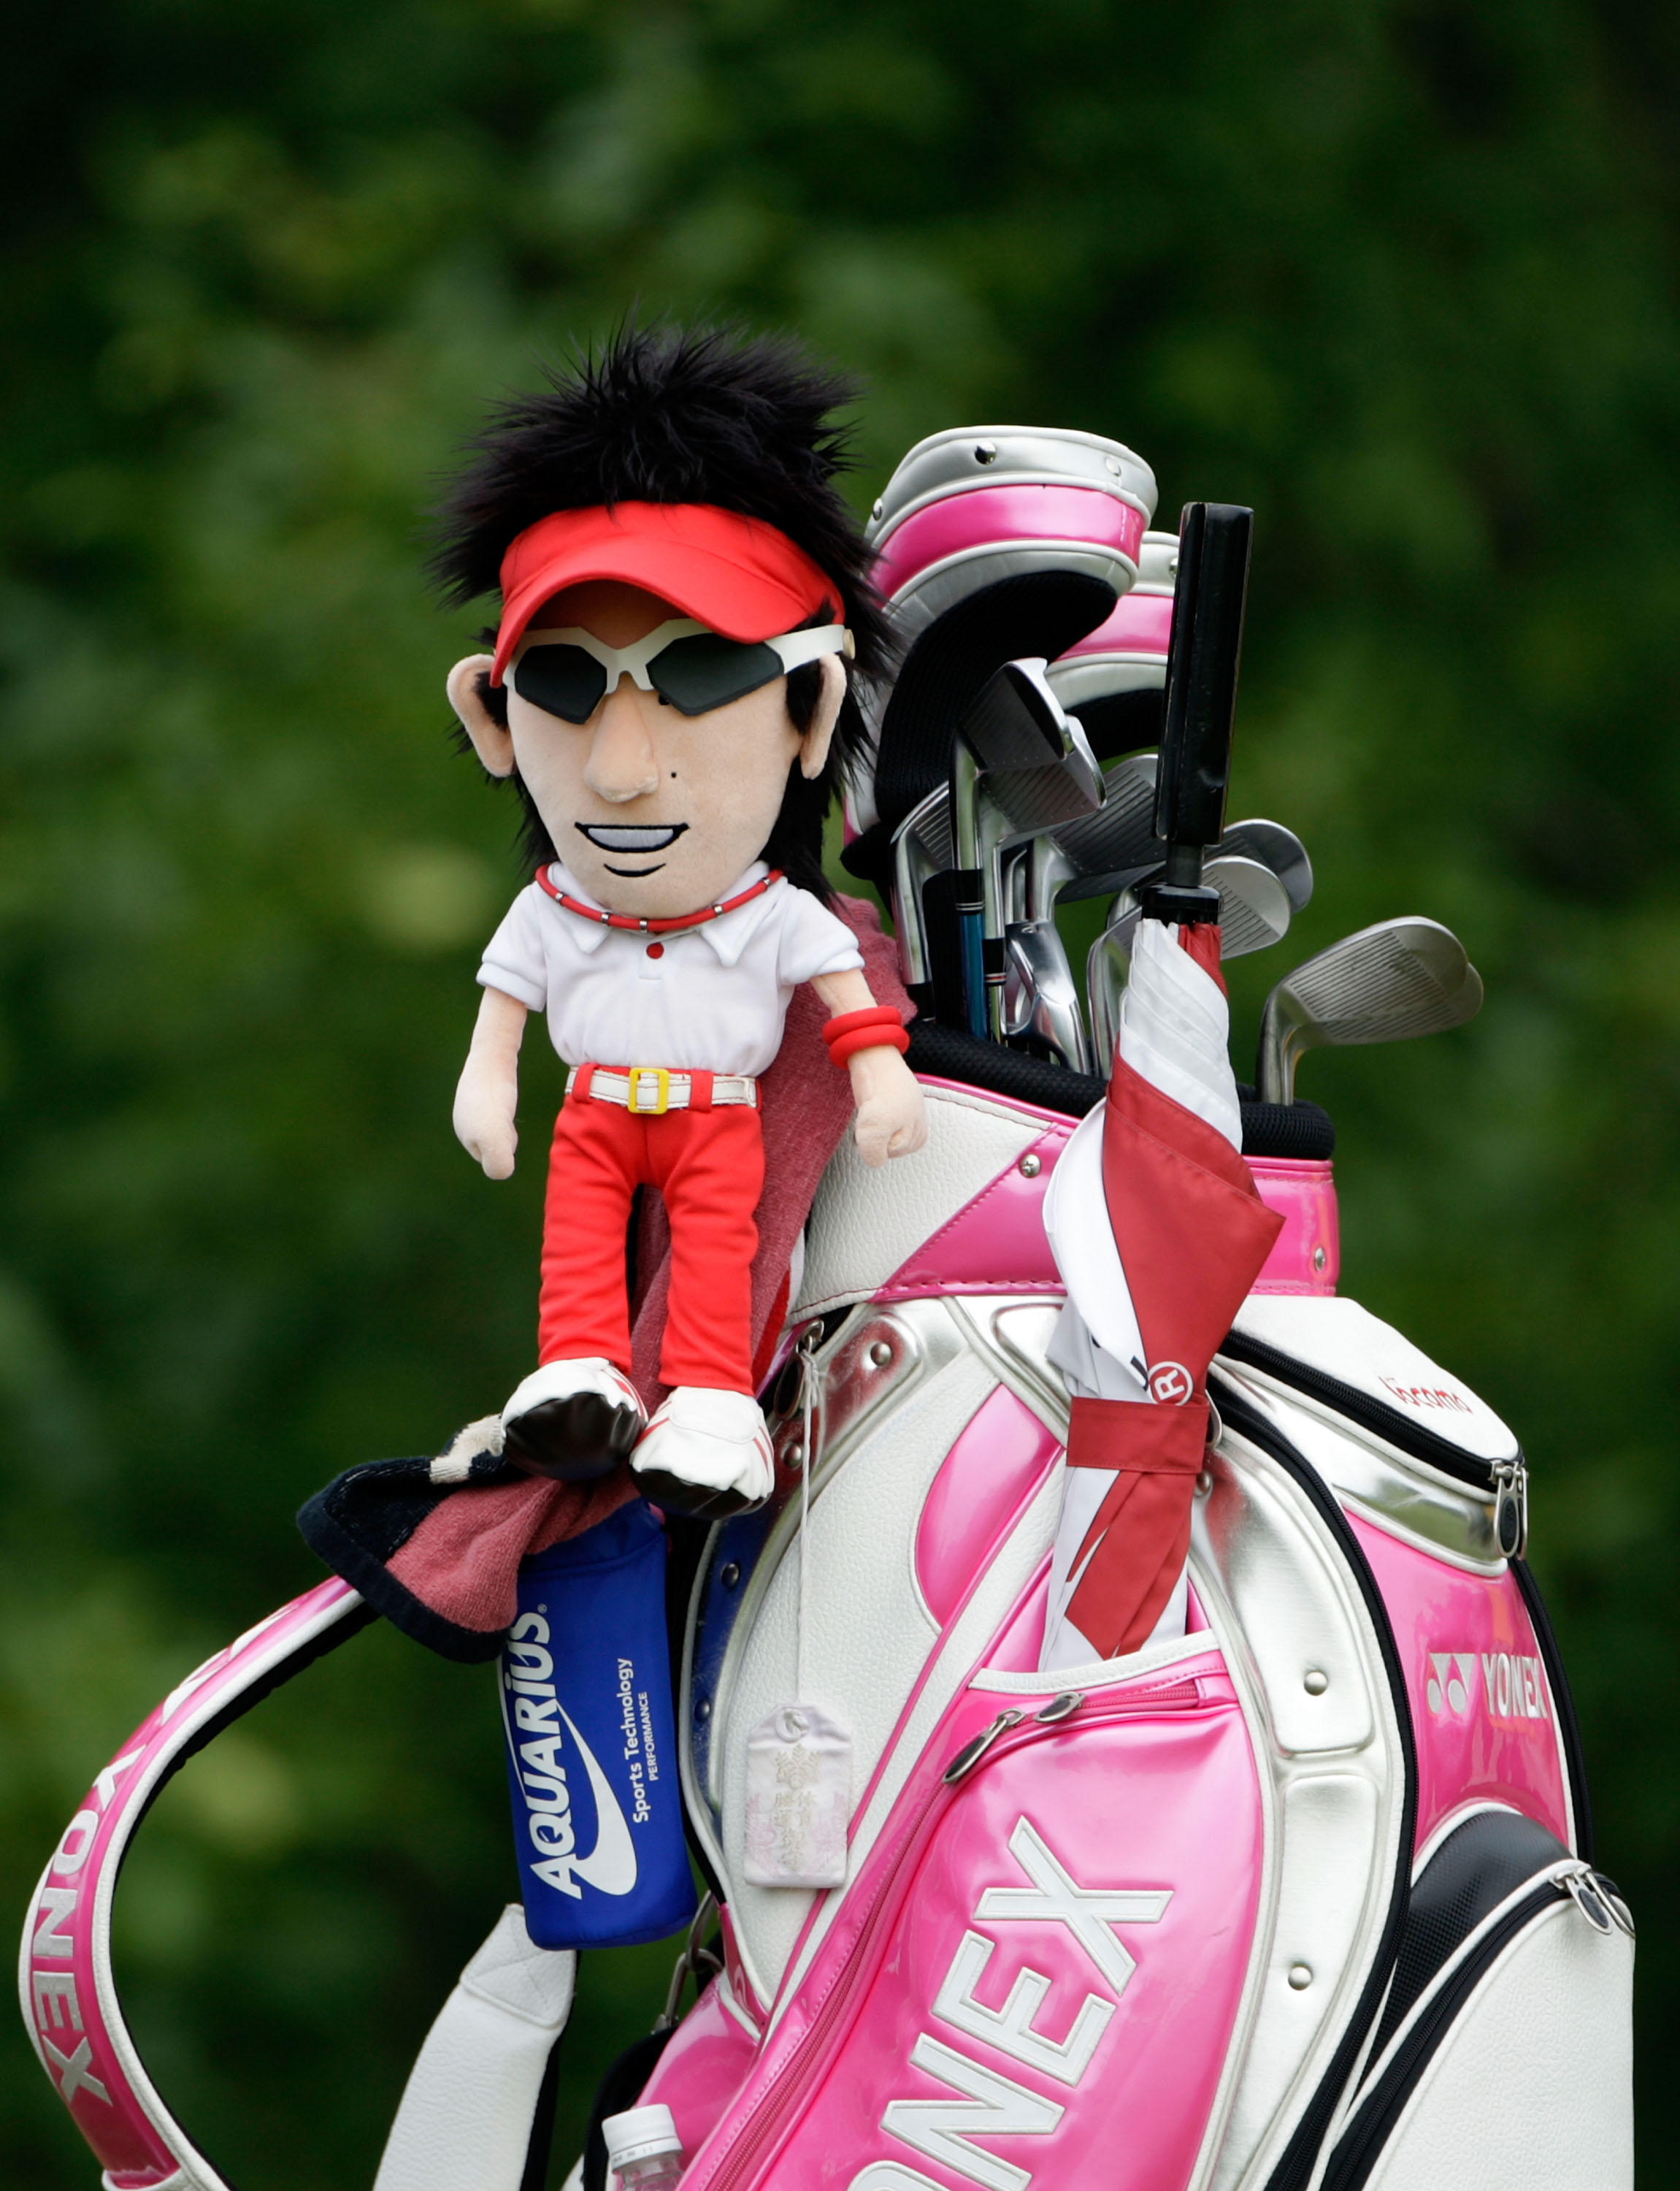 CHASKA, MN - AUGUST 15:  The golf bag of Ryo Ishikawa of Japan is seen on the tenth hole during the third round of the 91st PGA Championship at Hazeltine National Golf Club on August 15, 2009 in Chaska, Minnesota.  (Photo by Jamie Squire/Getty Images)